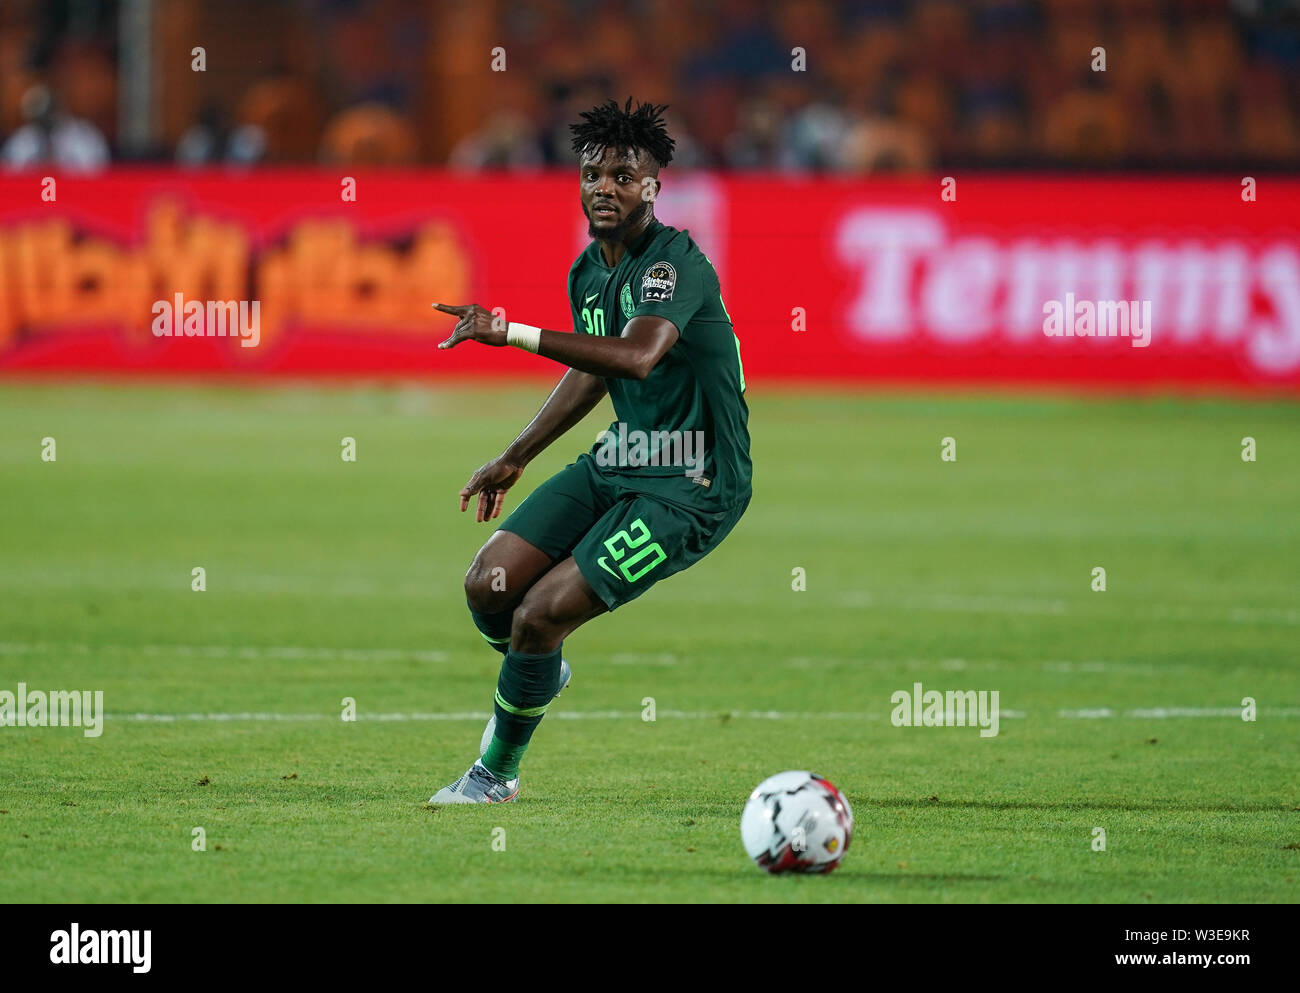 Cairo, Algeria, Egypt. 14th July, 2019. FRANCE OUT July 14, 2019: Awaziem Chidozie Collins of Nigeria during the 2019 African Cup of Nations match between Algeria and Nigeria at the Cairo International Stadium in Cairo, Egypt. Ulrik Pedersen/CSM/Alamy Live News - Stock Image